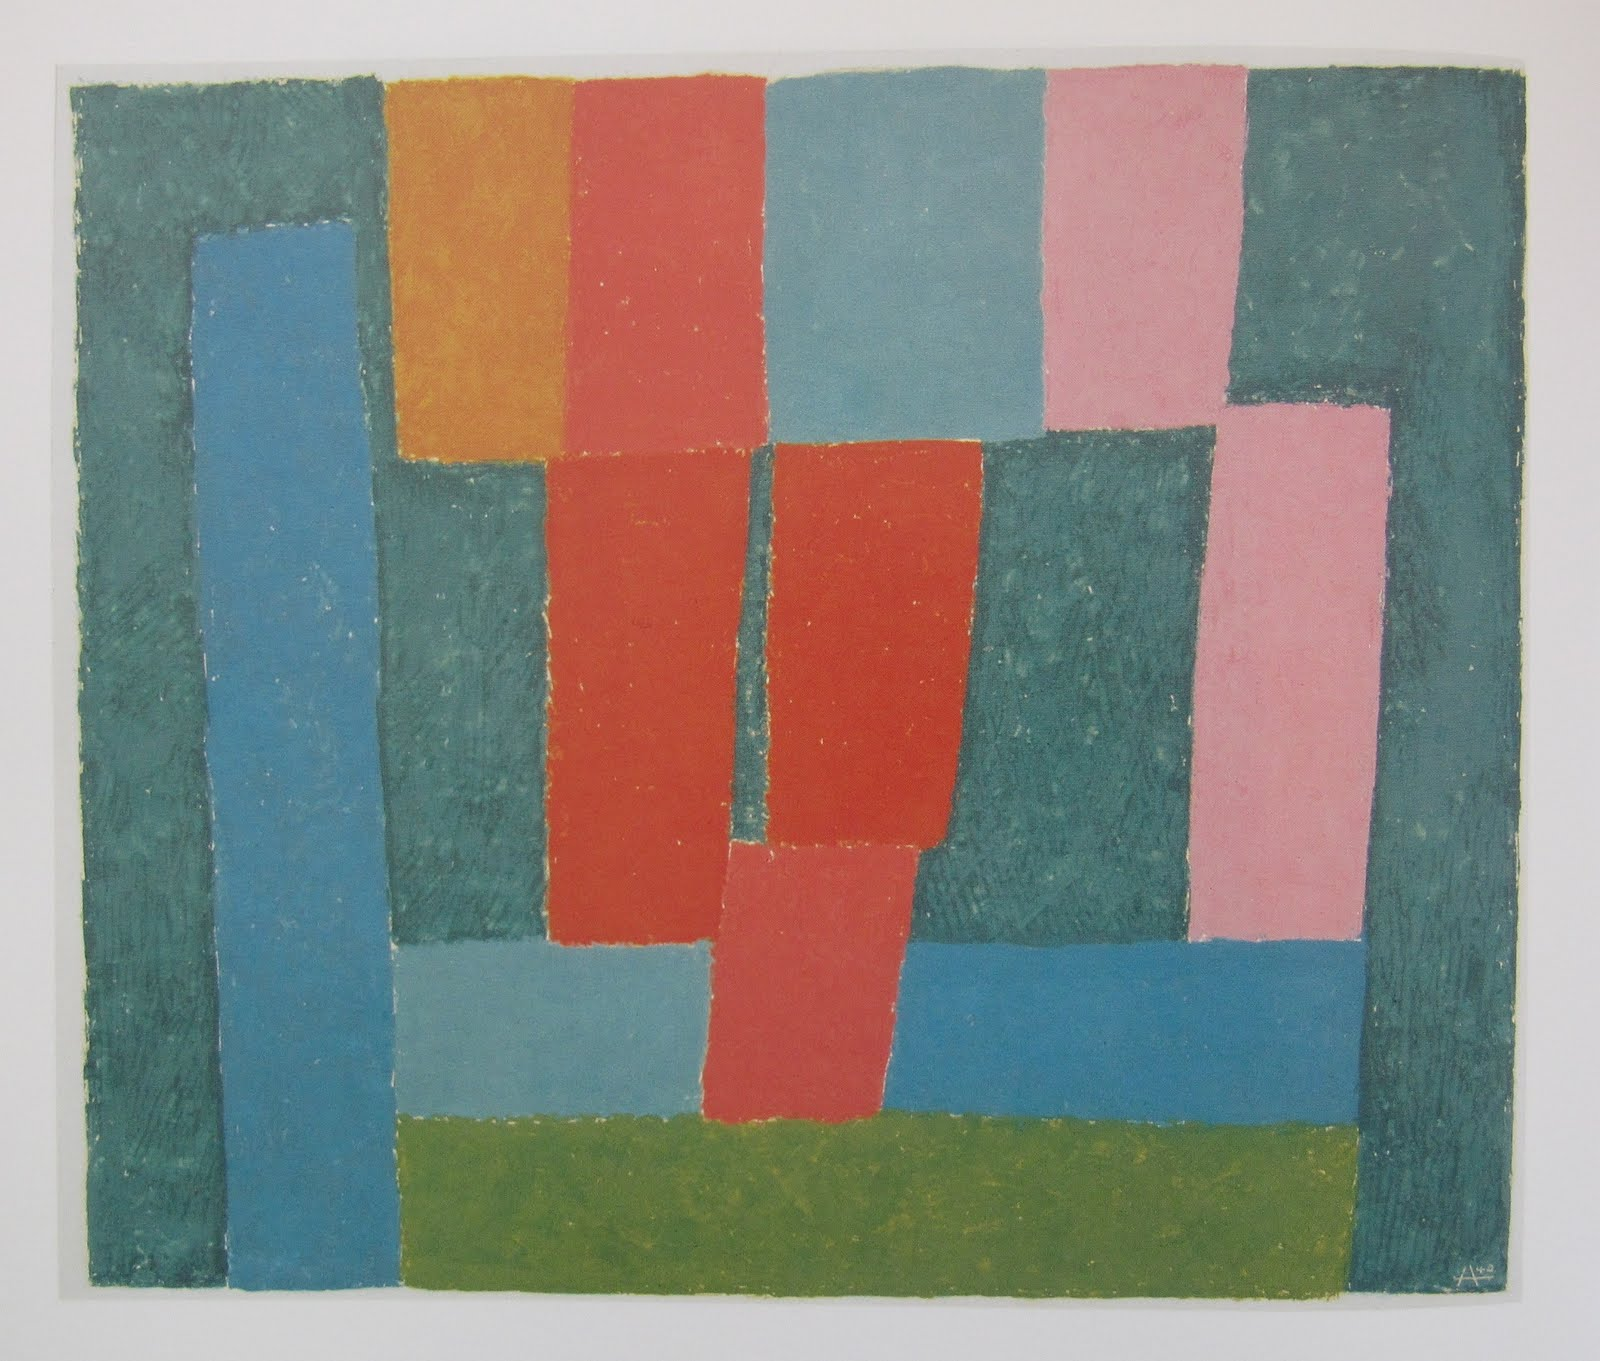 Josef Albers - Growing